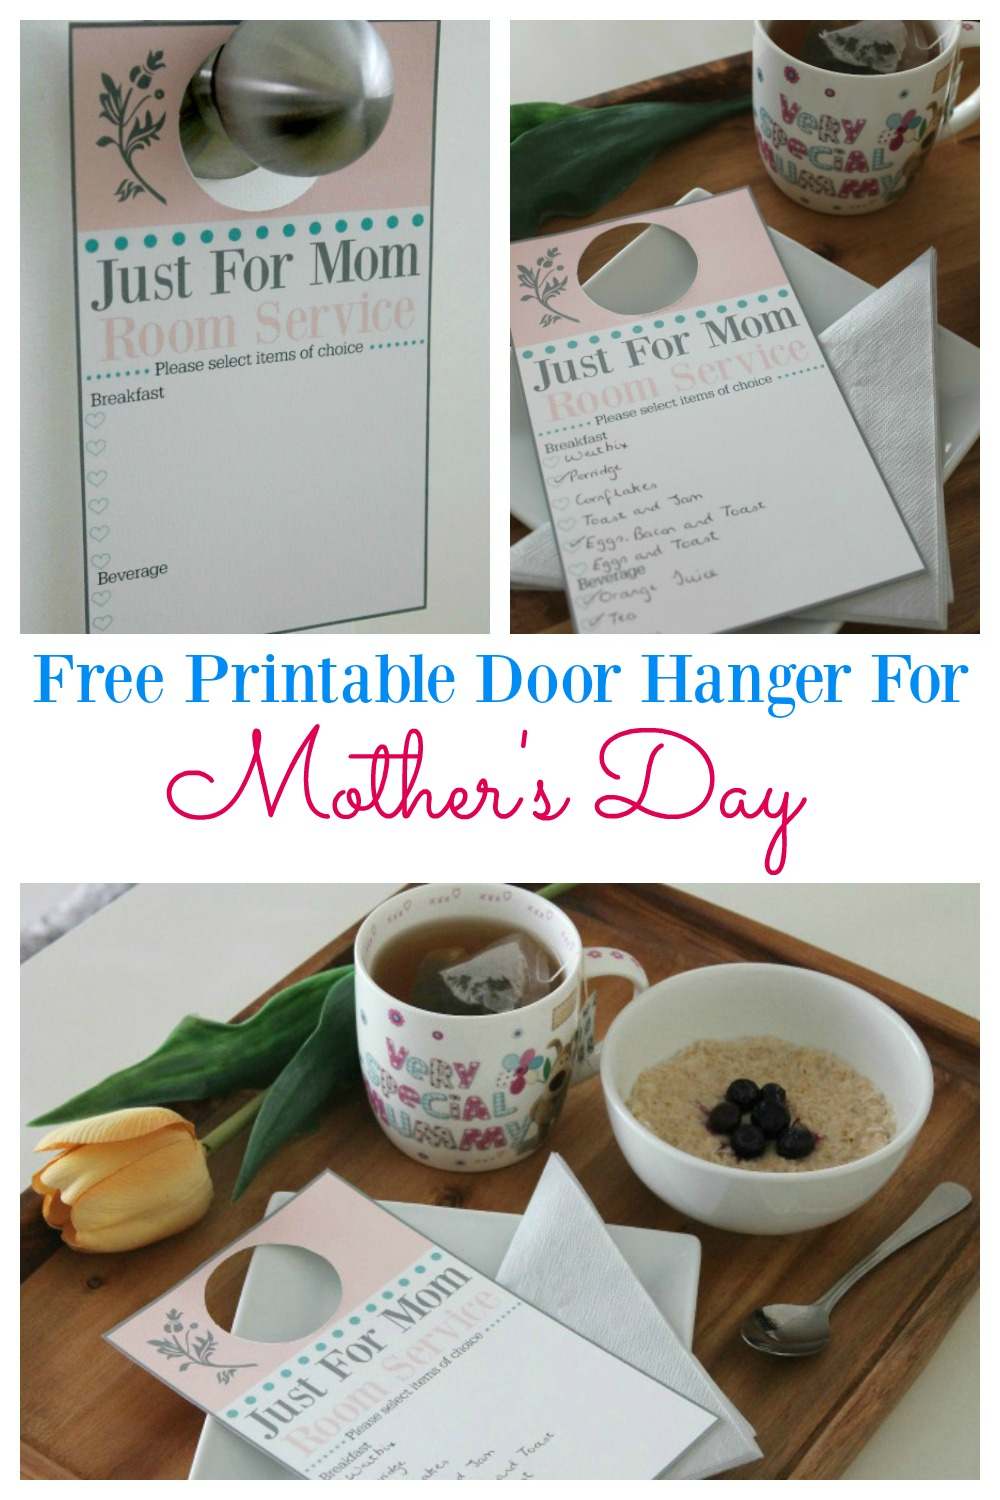 Download a free printable mother's daydoor hanger so you can provide room service to mom on her special day. Allow mom to feel pampered by bringing the luxury of staying in a hotel to her own bedroom. Kids will enjoy undertaking this easy gesture and preparing breakfast for mom in the morning. Forget expensive gifts, as this is all mom needs to feel special.